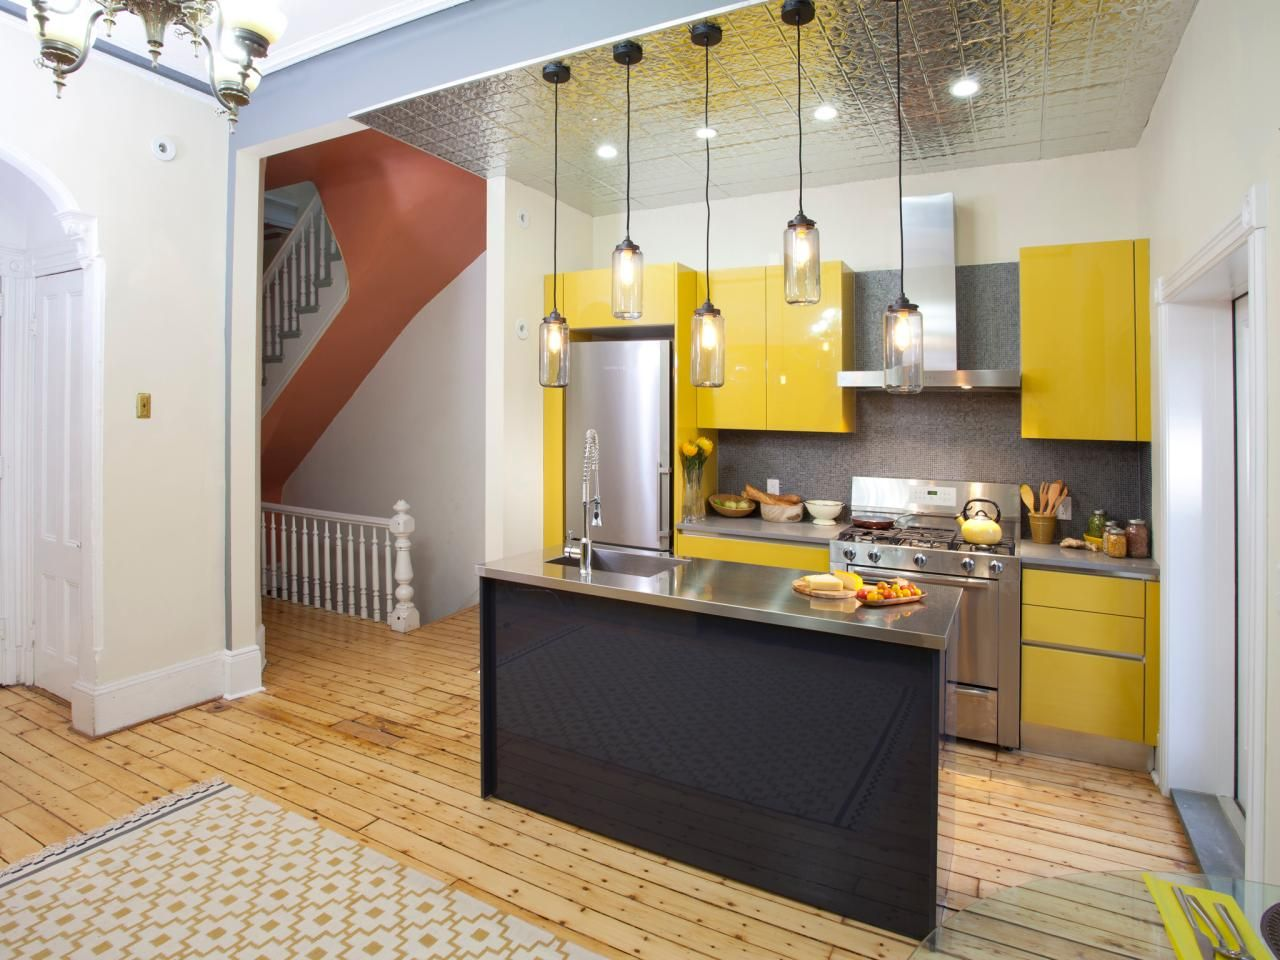 Small Galley Kitchen Ideas Pictures & Tips From HGTV   Small ...